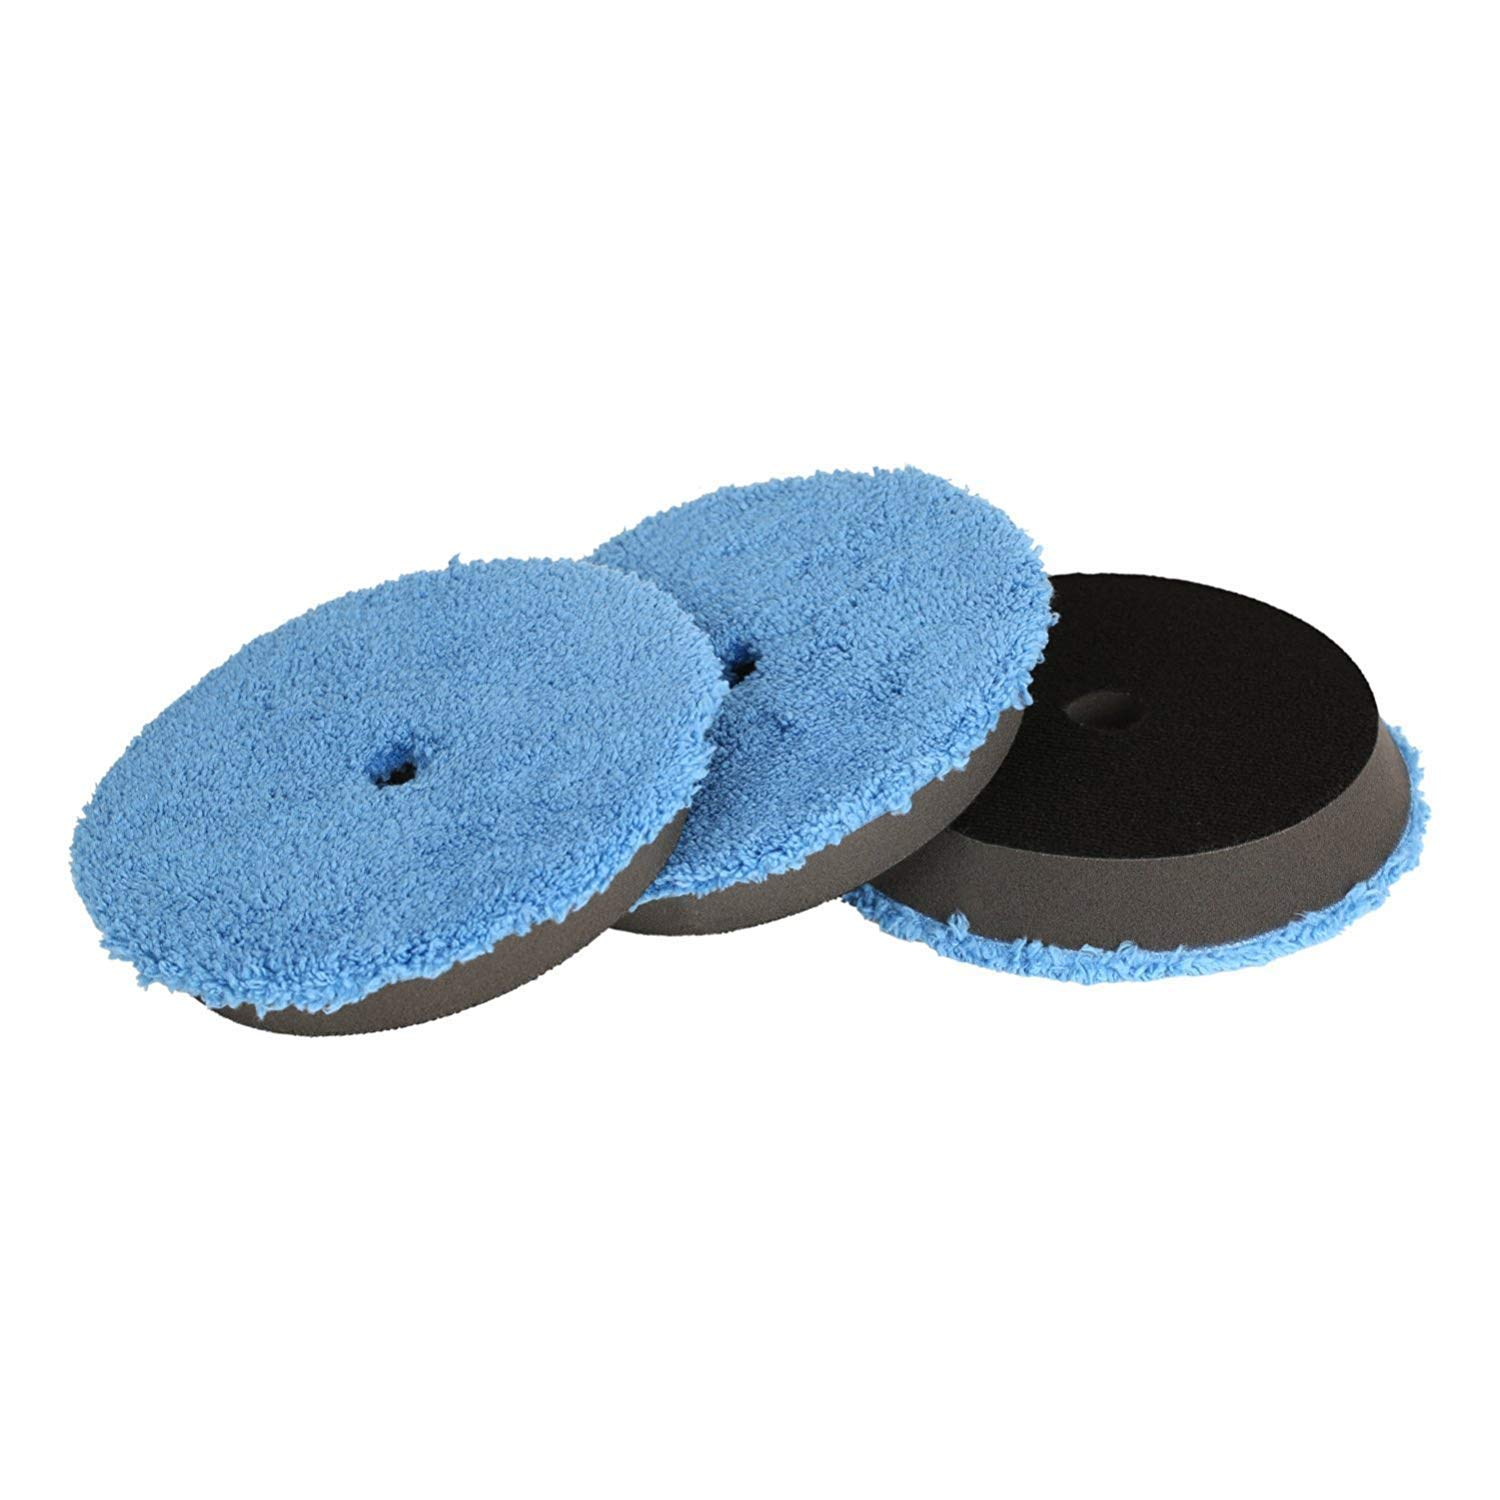 SPTA Microfiber Fast Finishing Pad 3 Pcs 6 inch (150 mm) Polishing Pads, Buffing Compound Pads Kits for 5 Inch (125mm) DA/RO Car Polisher